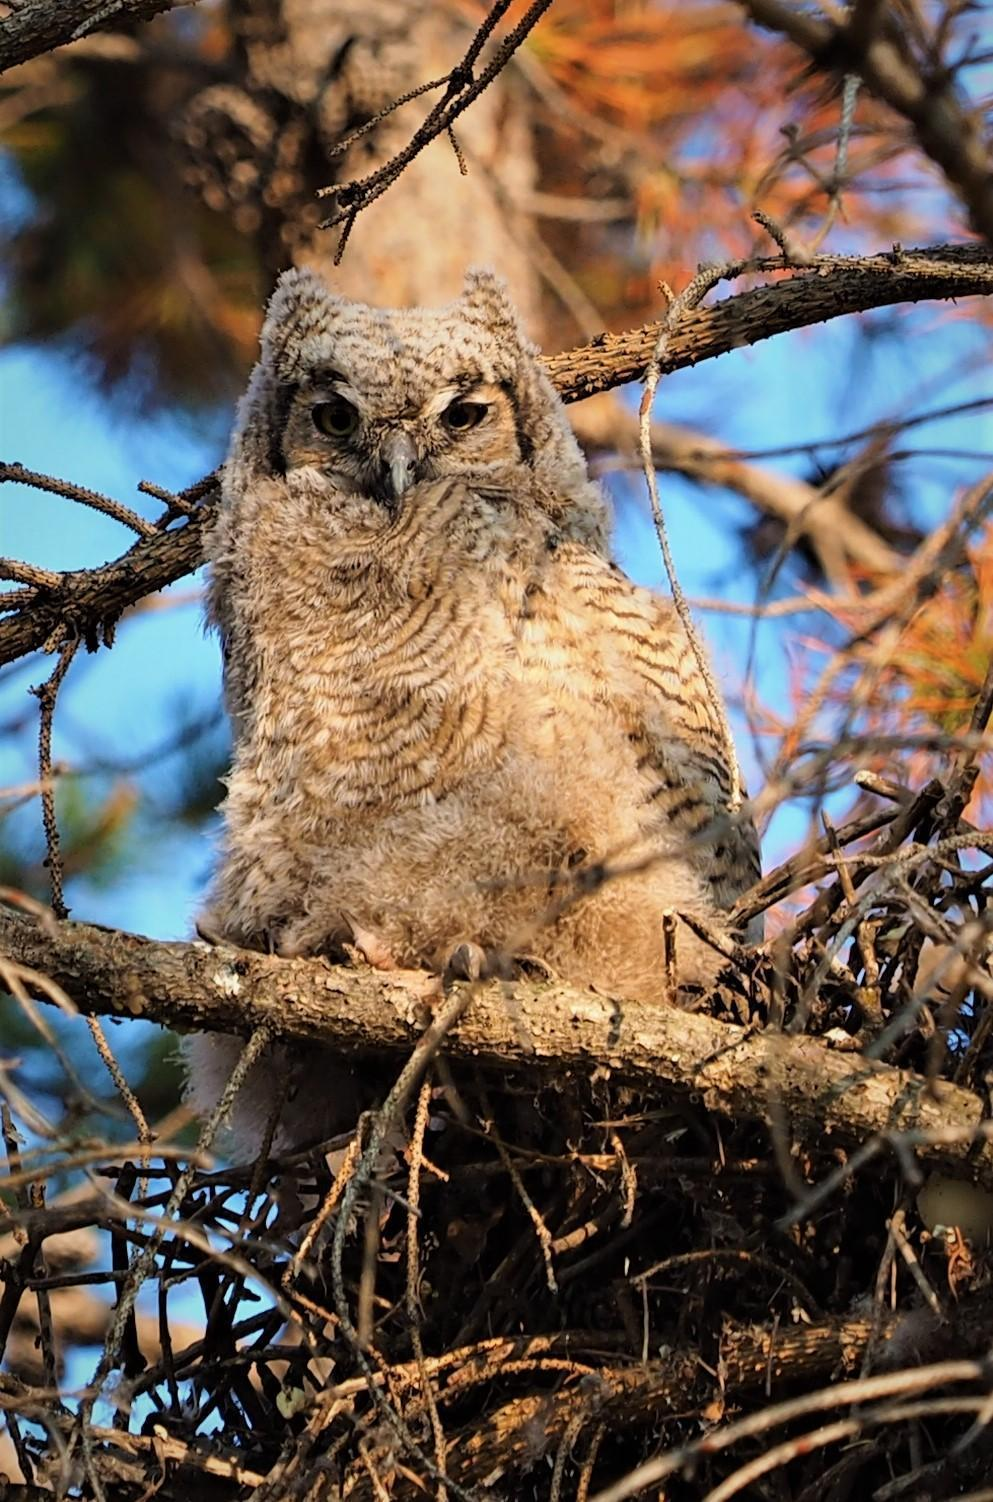 Great Horned Owl Photo by Colin Hill